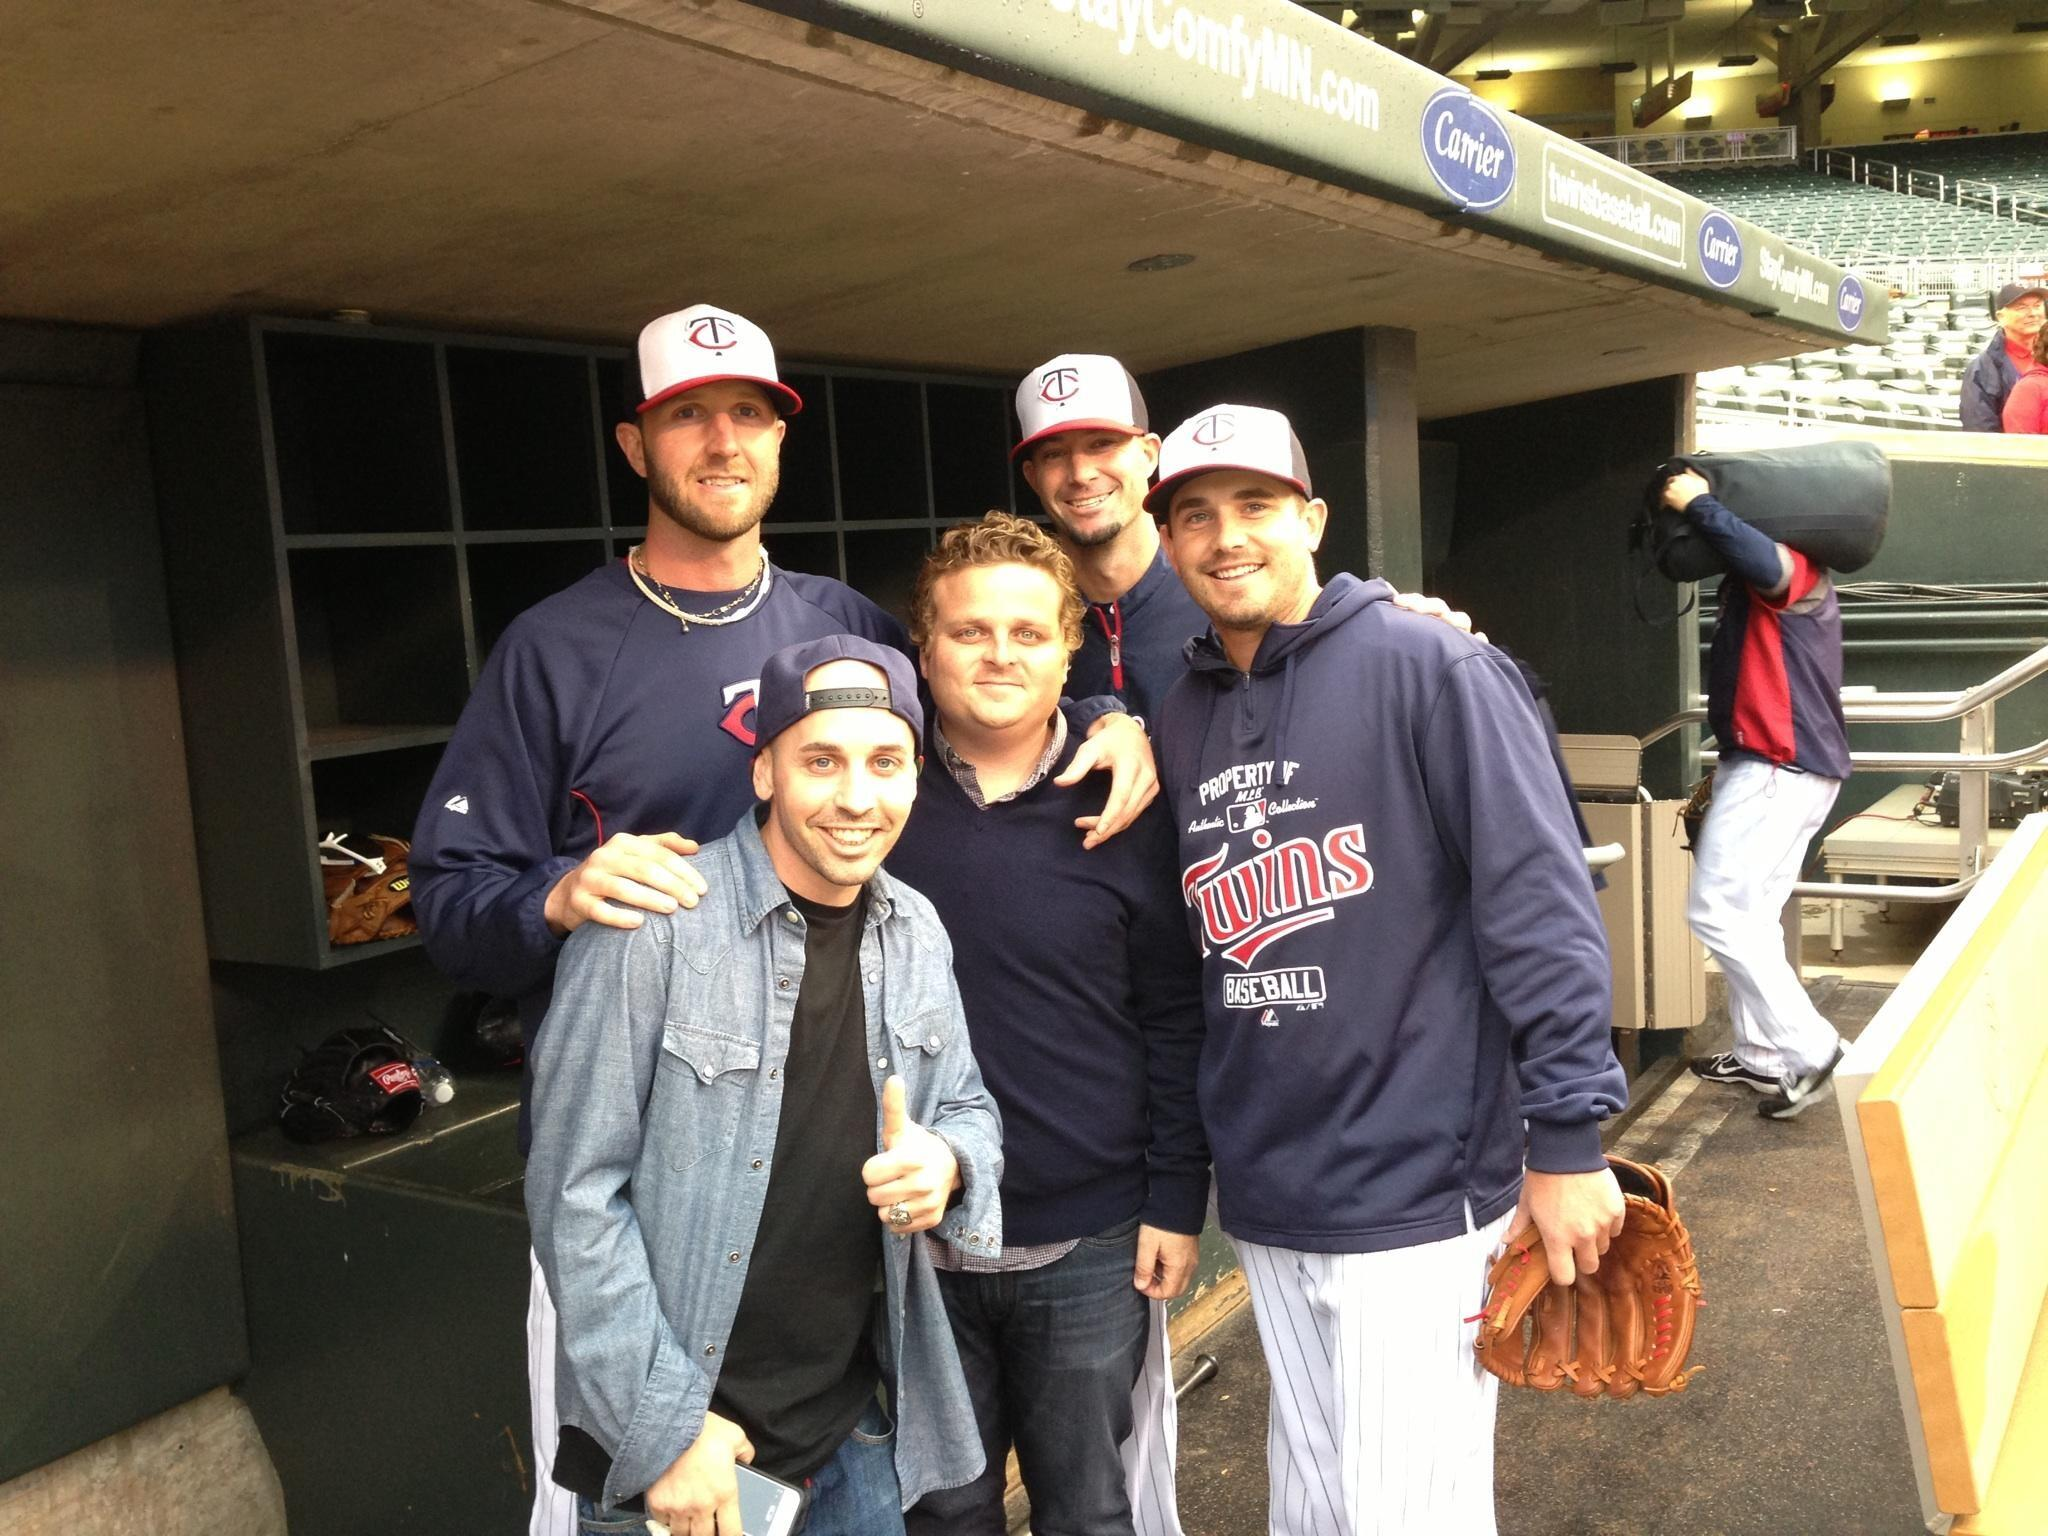 Ham and Squints from The Sandlot, 20 years later, with Twins pitcher Brian Duensing